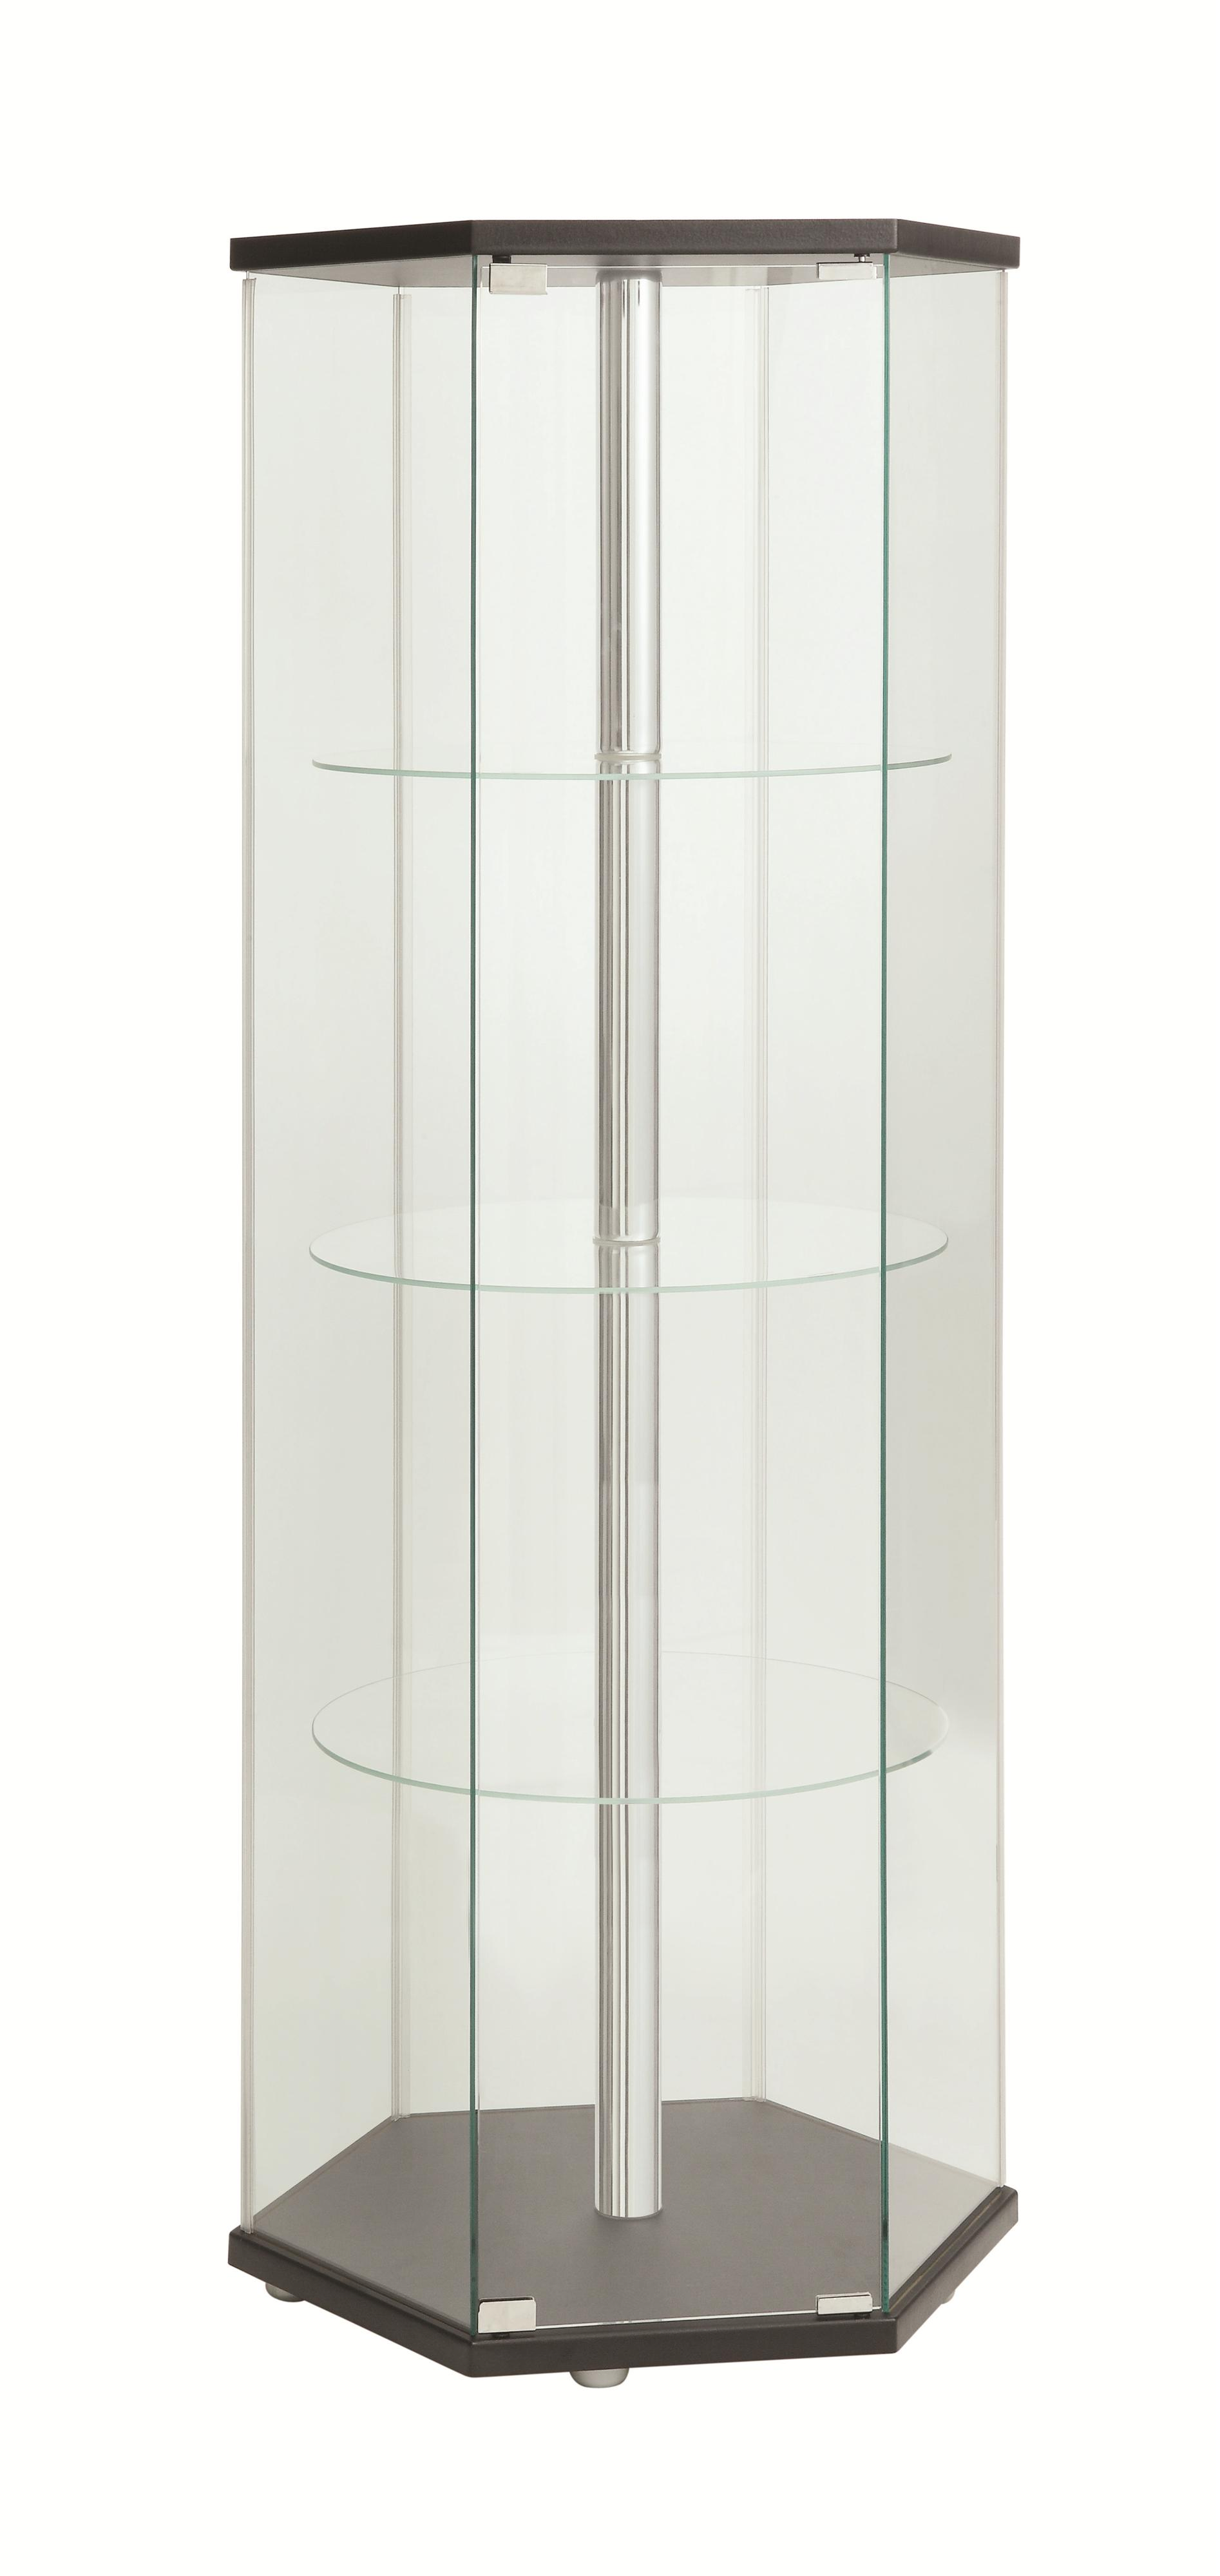 Coaster Accent Cabinets Curio Cabinet - Item Number: 950276